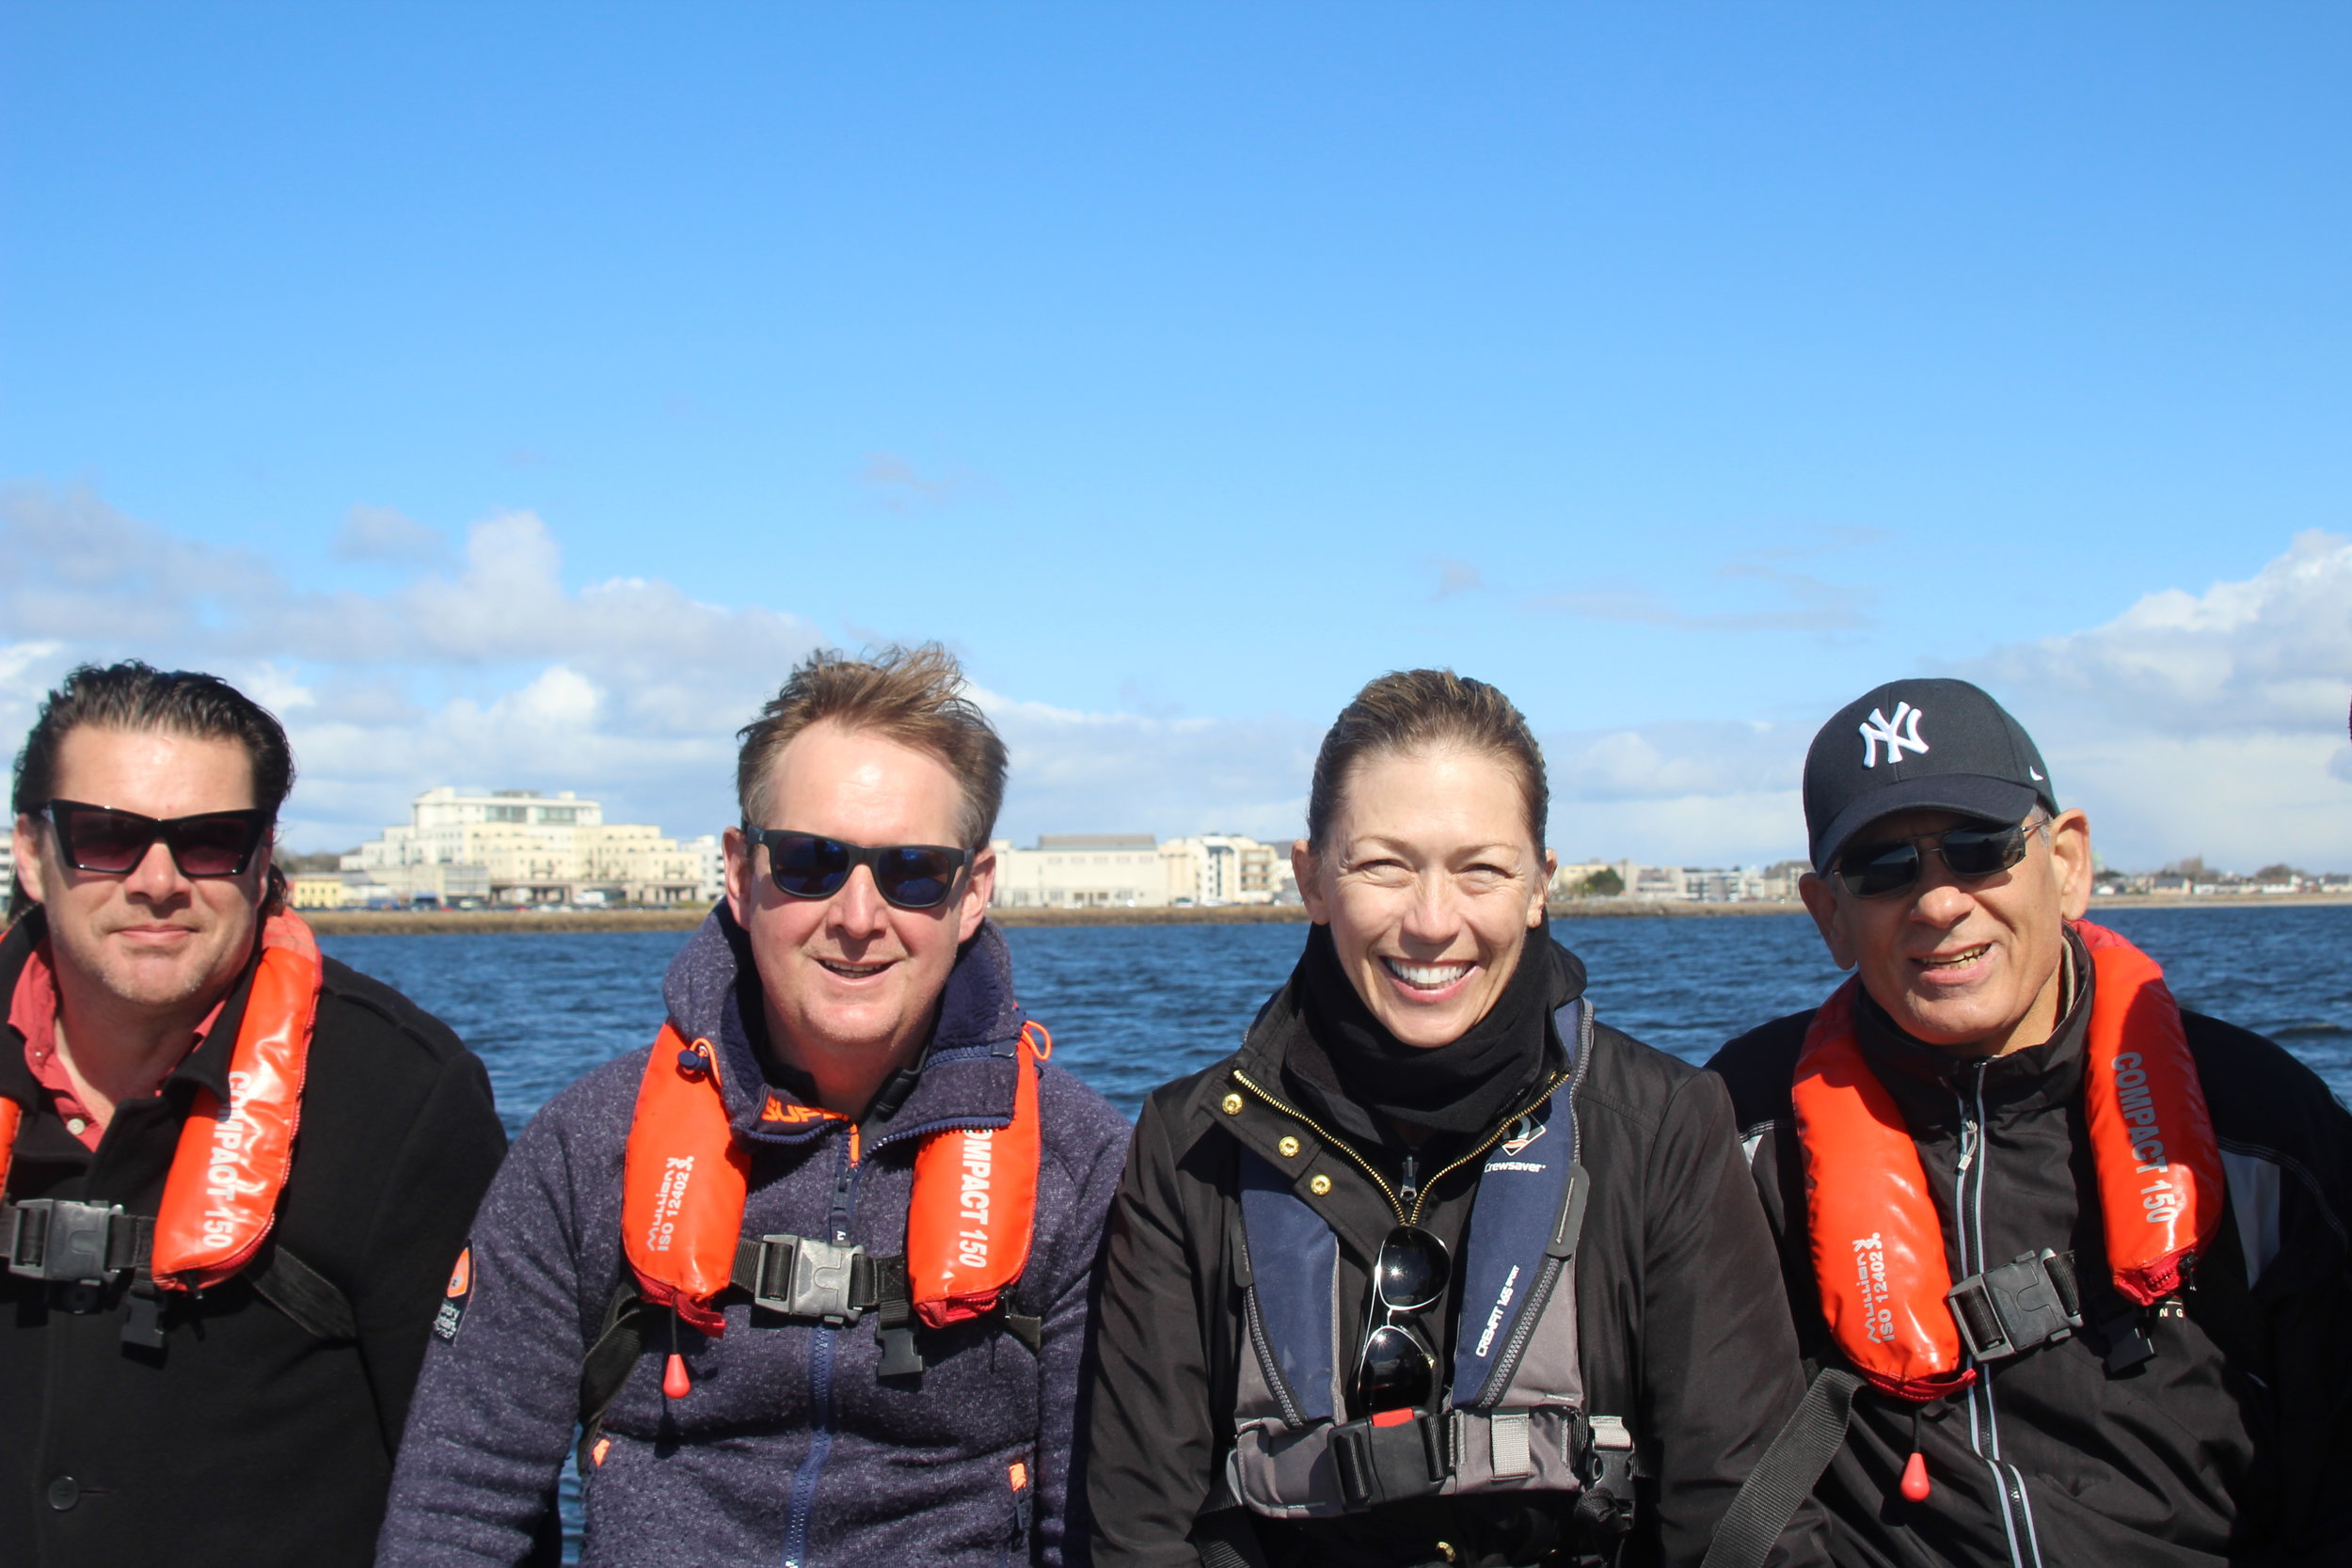 Galway Bay Boat Tour